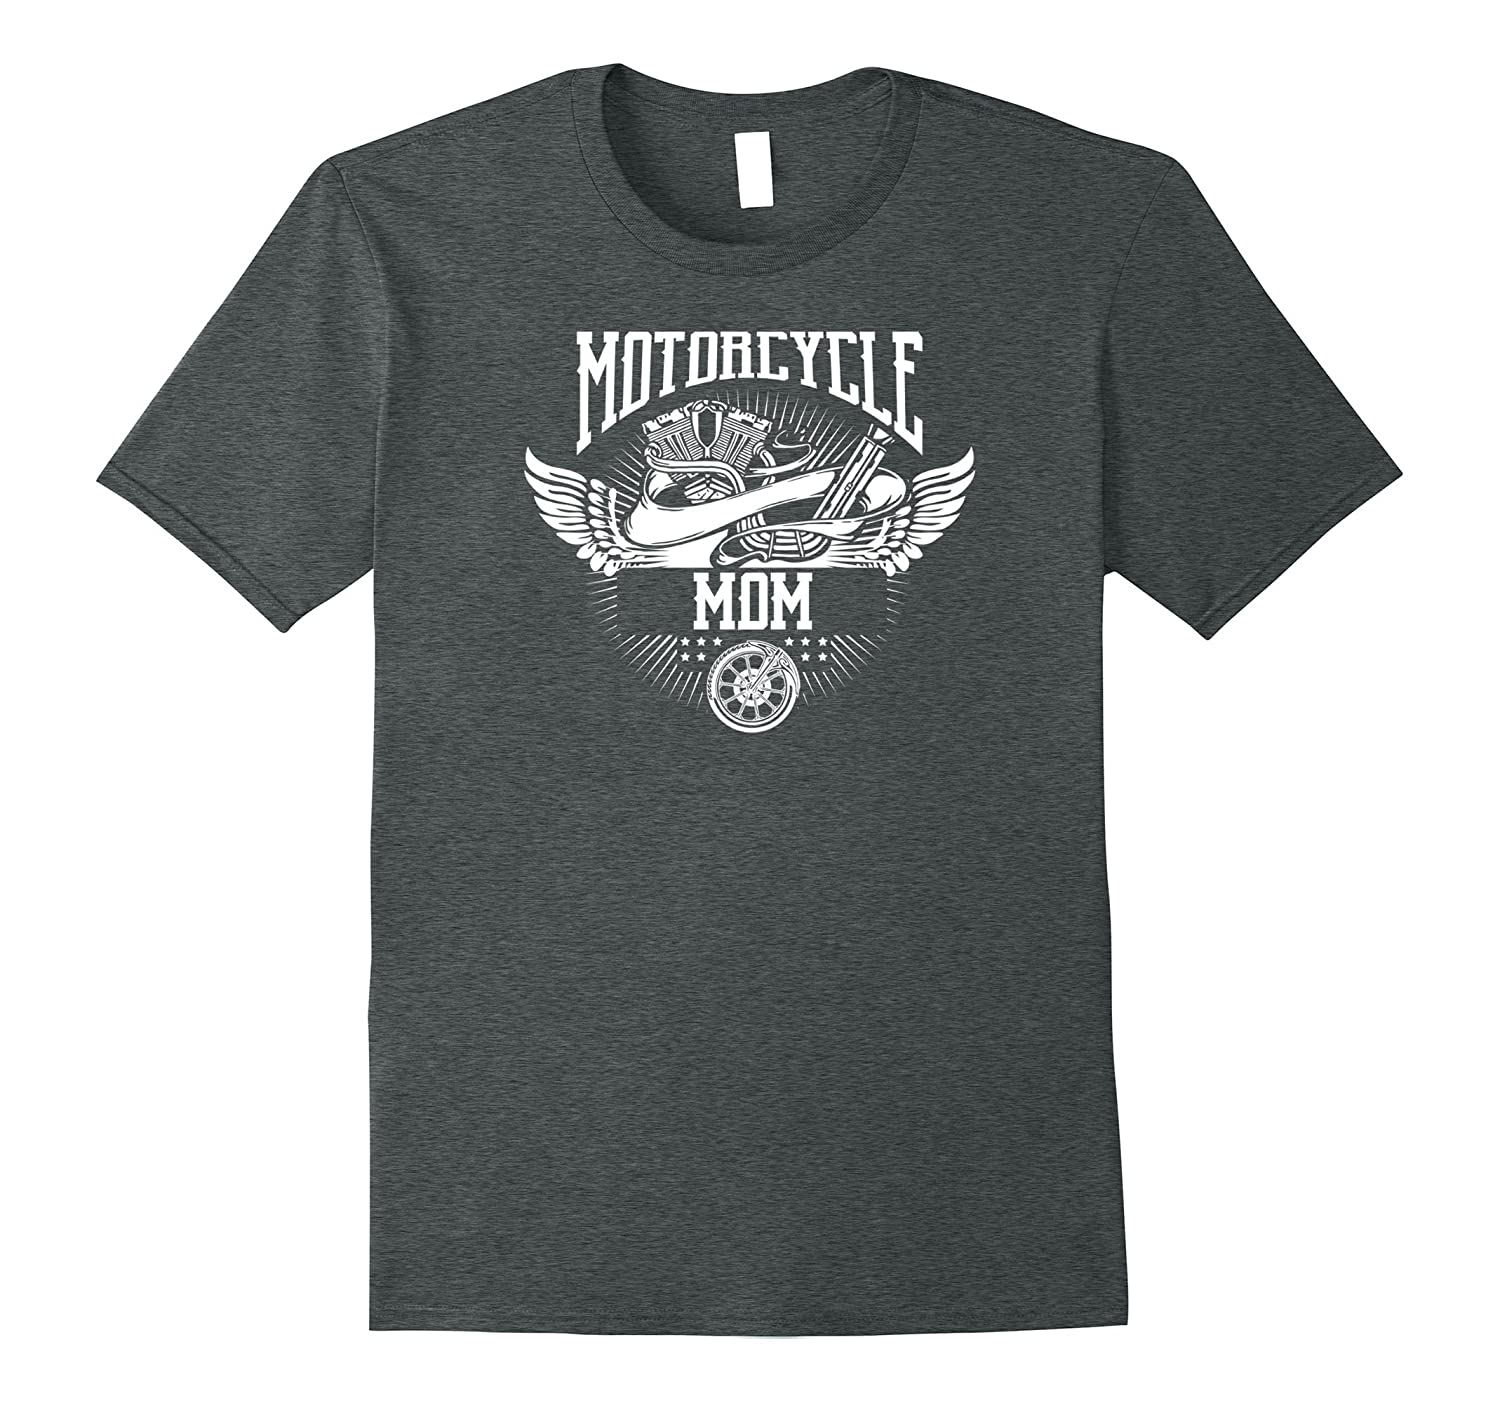 Motorcycle Mom Biker T-shirt-Vaci